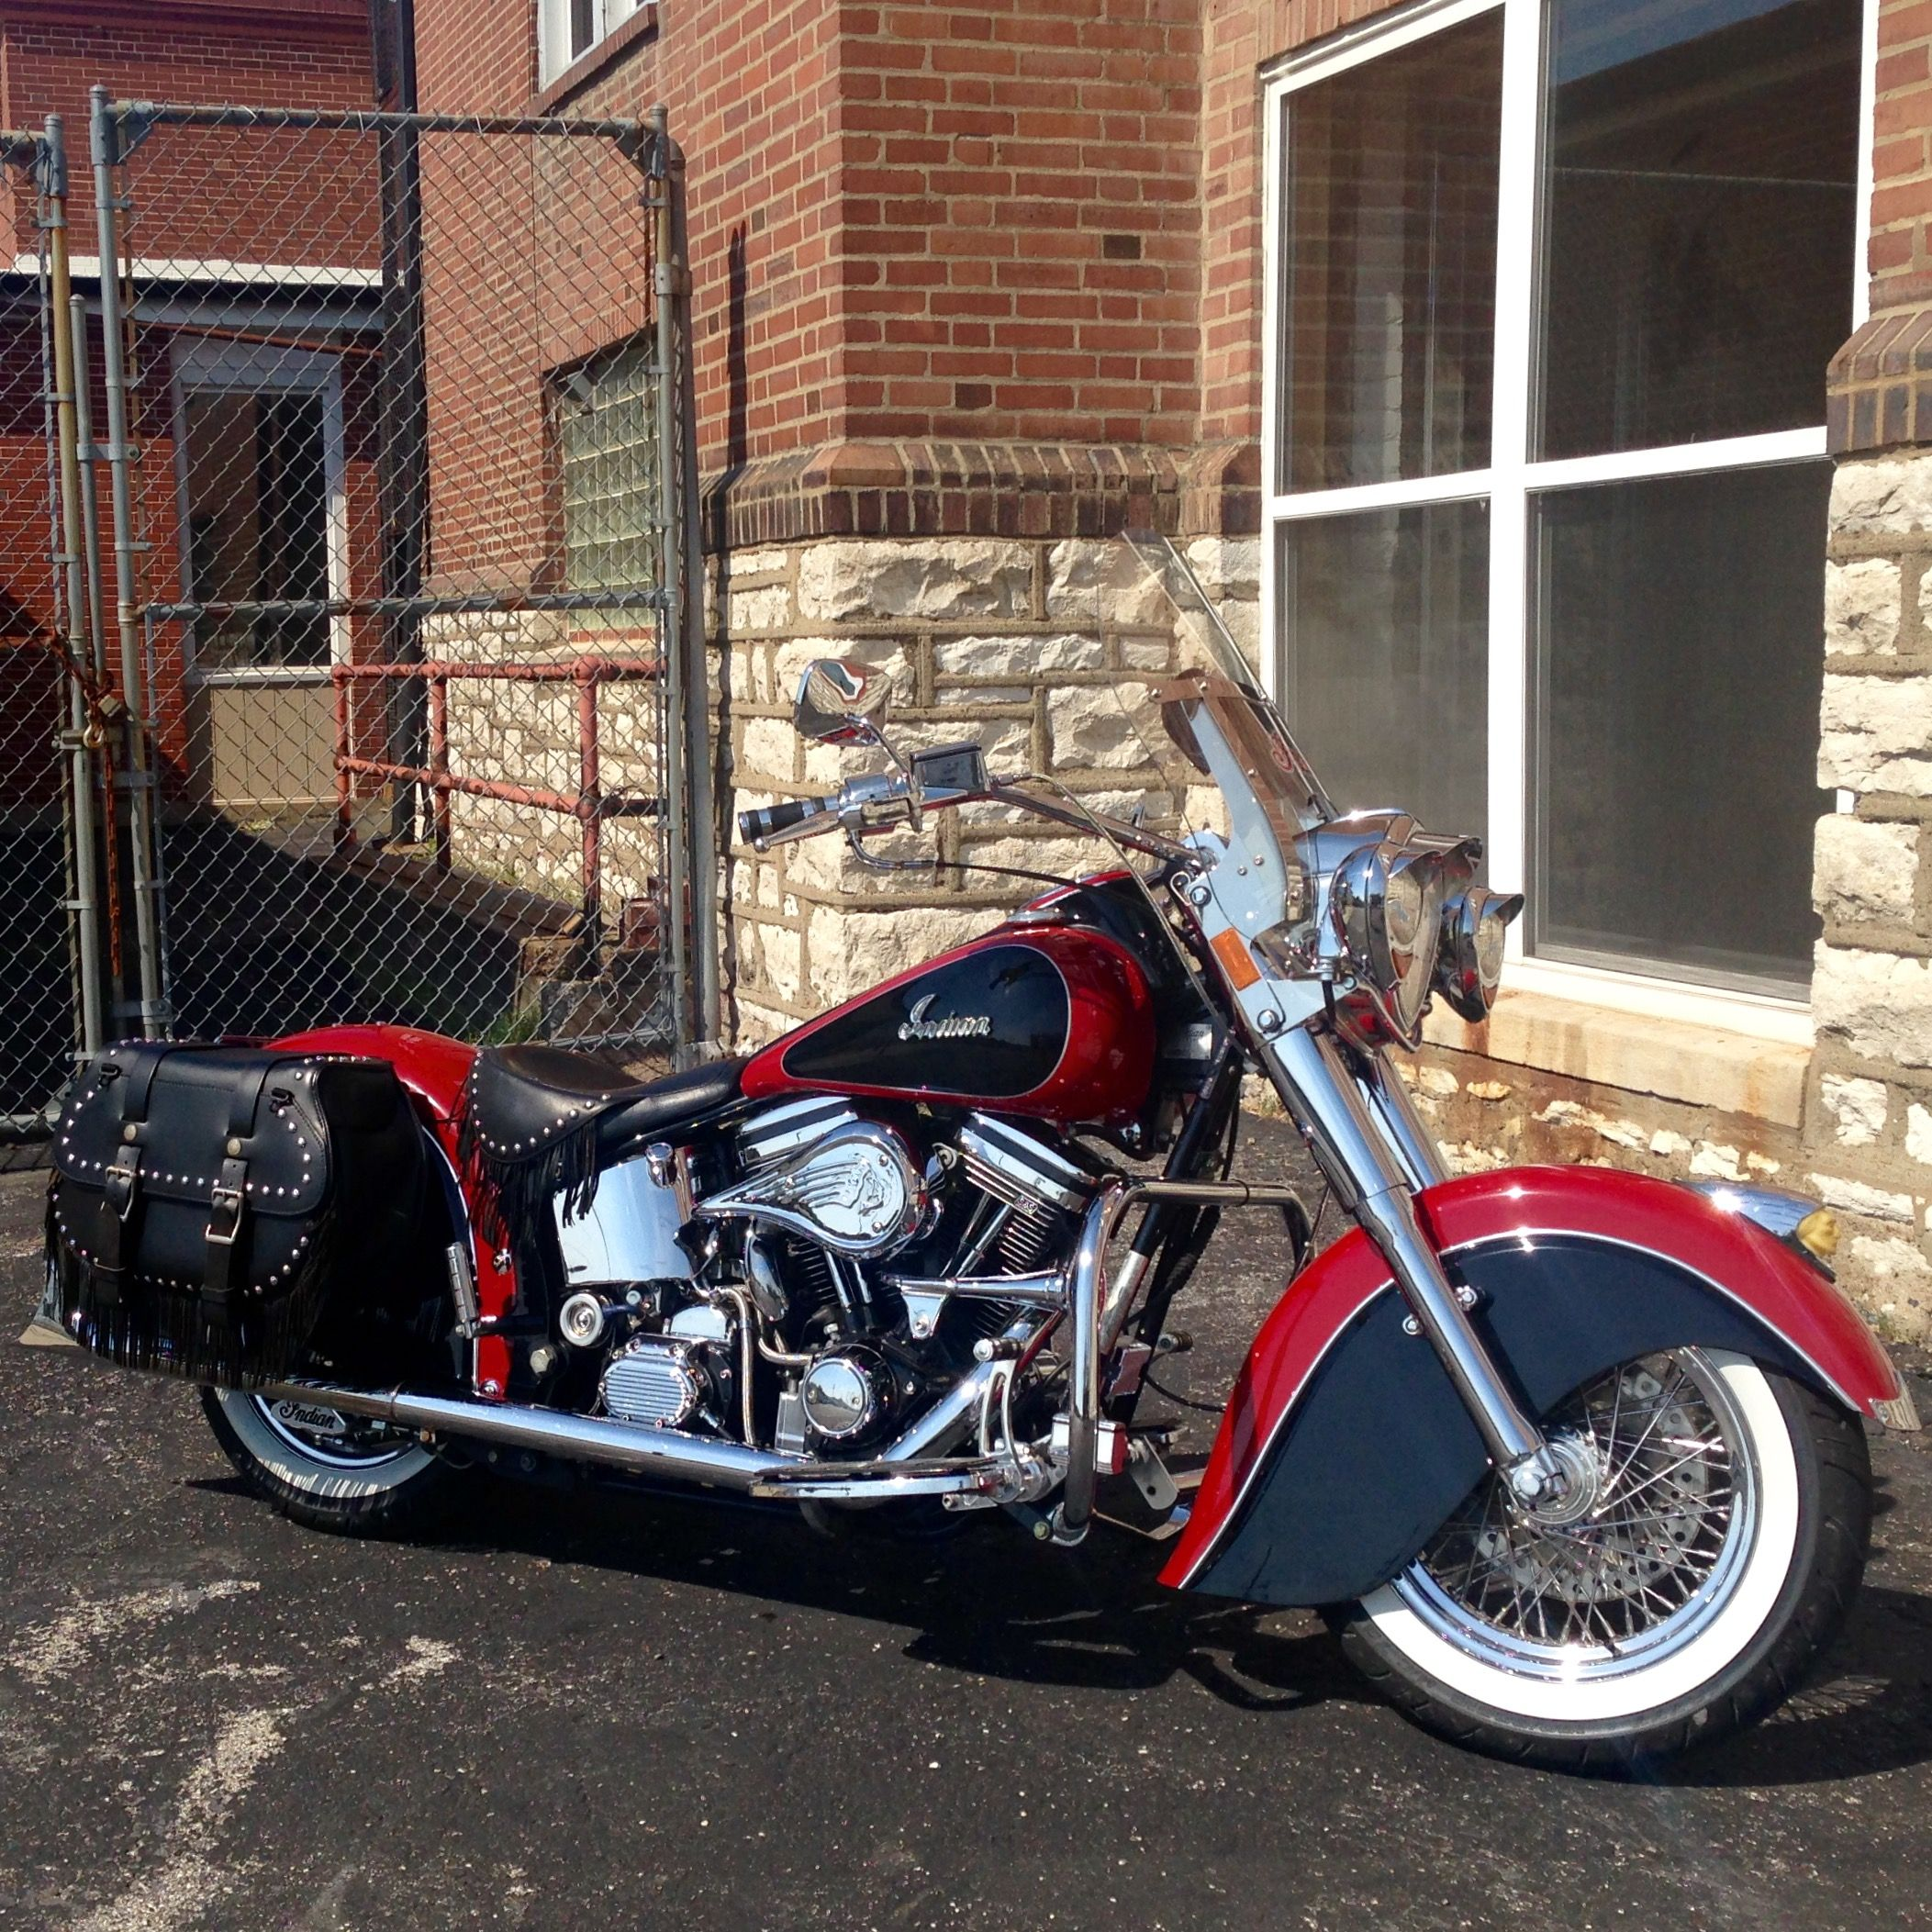 1999 Indian Chief Gilroy Indian Motorcycle Indian Chief Indian